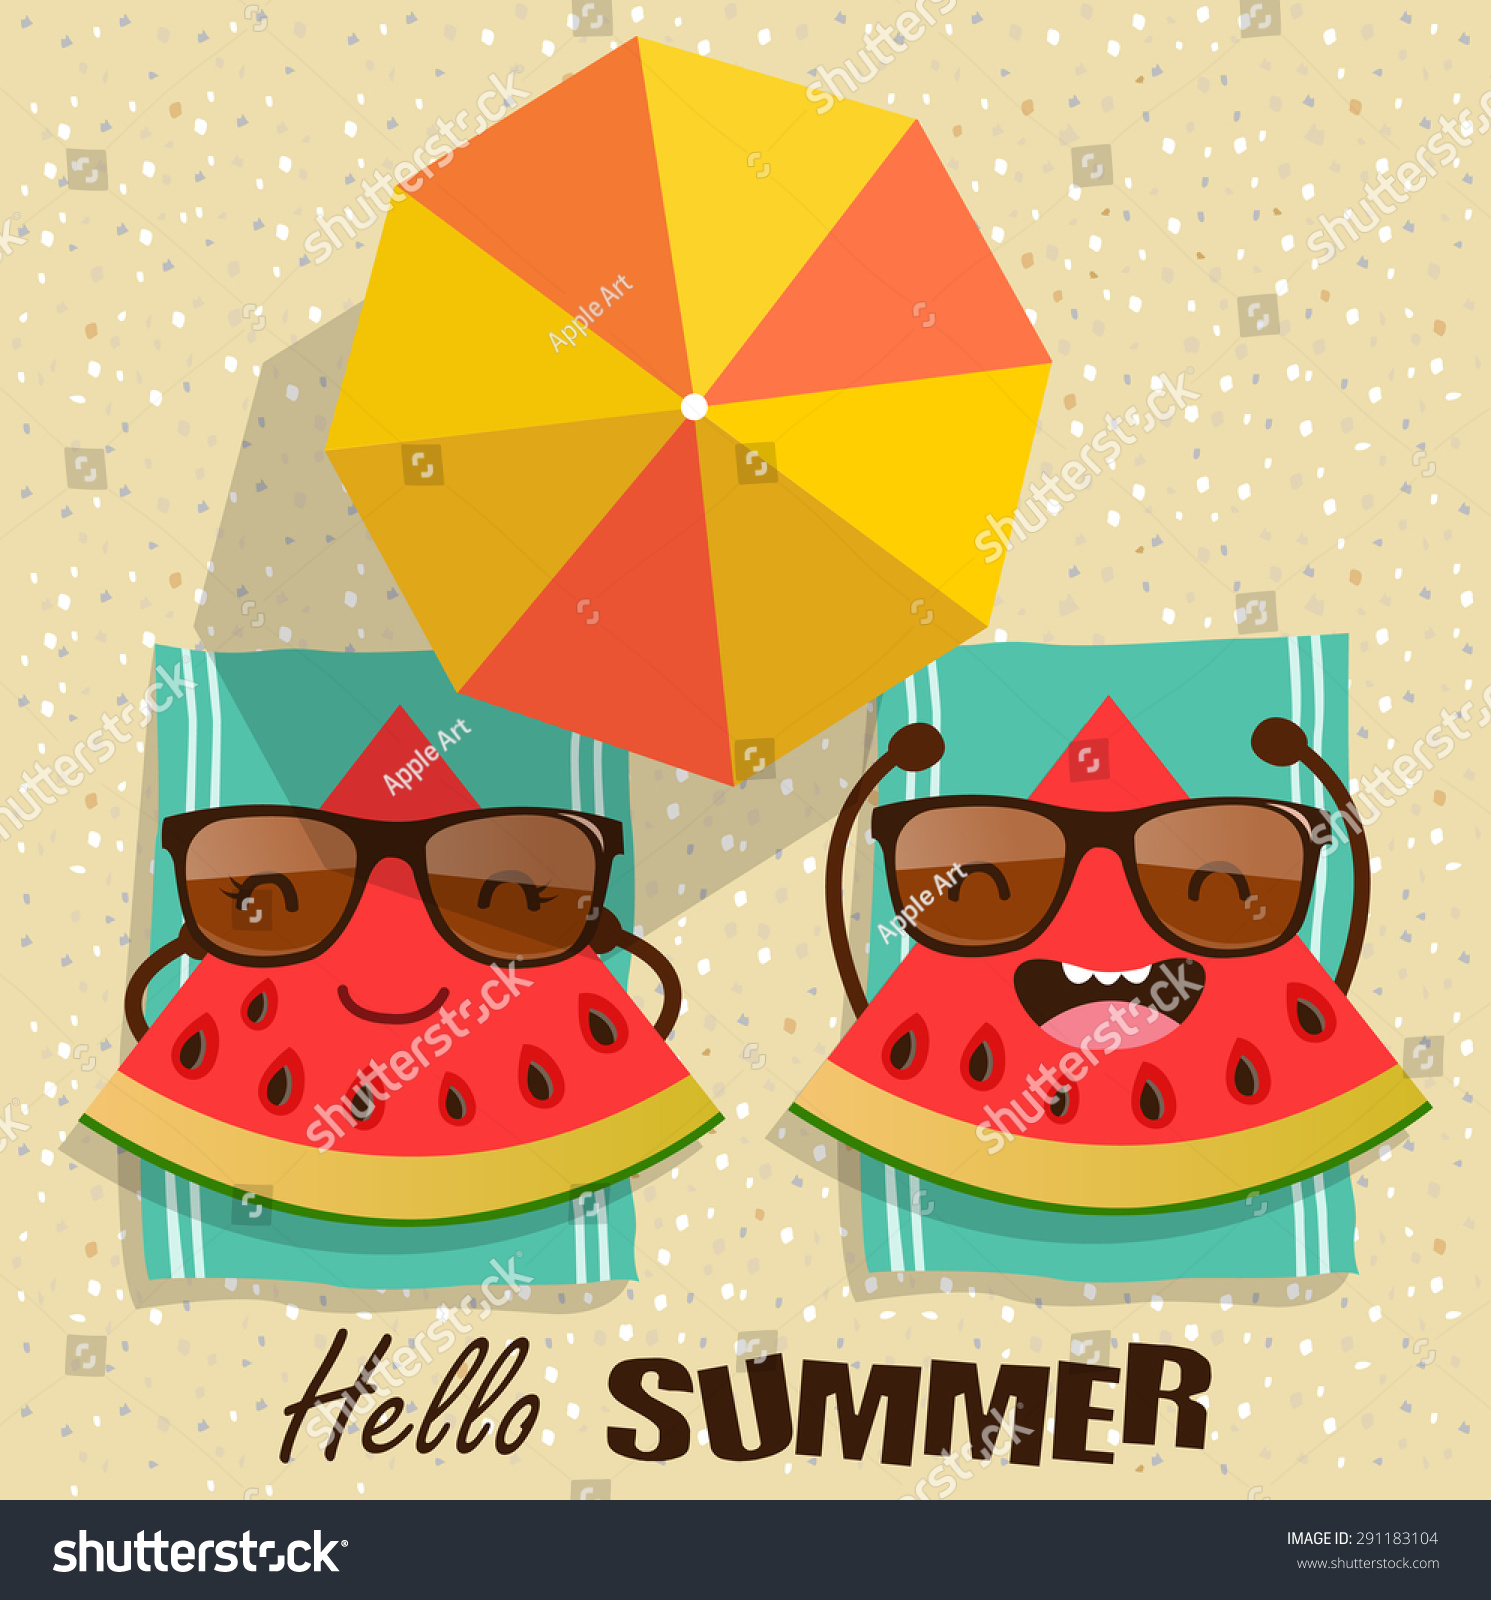 summer vector illustraitons - photo #26